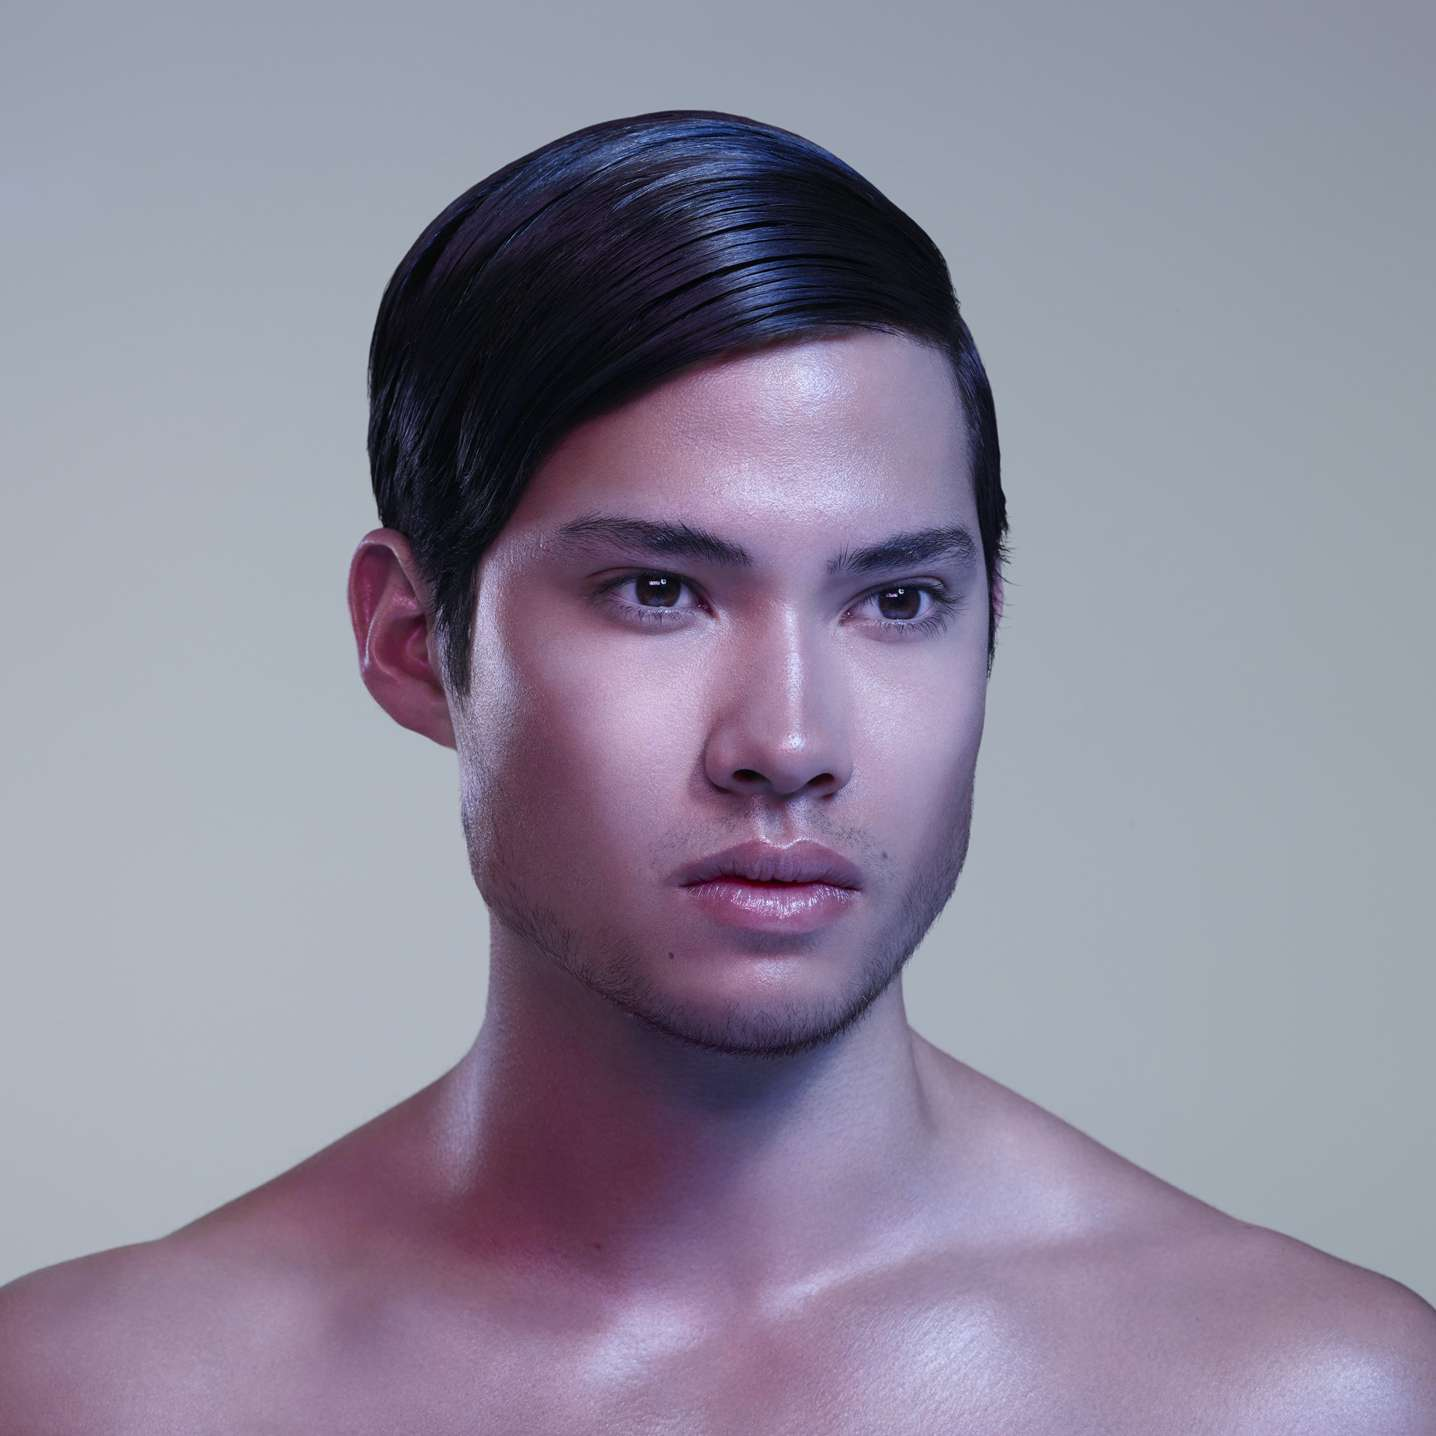 asian man slicked hair light beard light pink background soft coloured lights by Simon Duhamel for Skintone